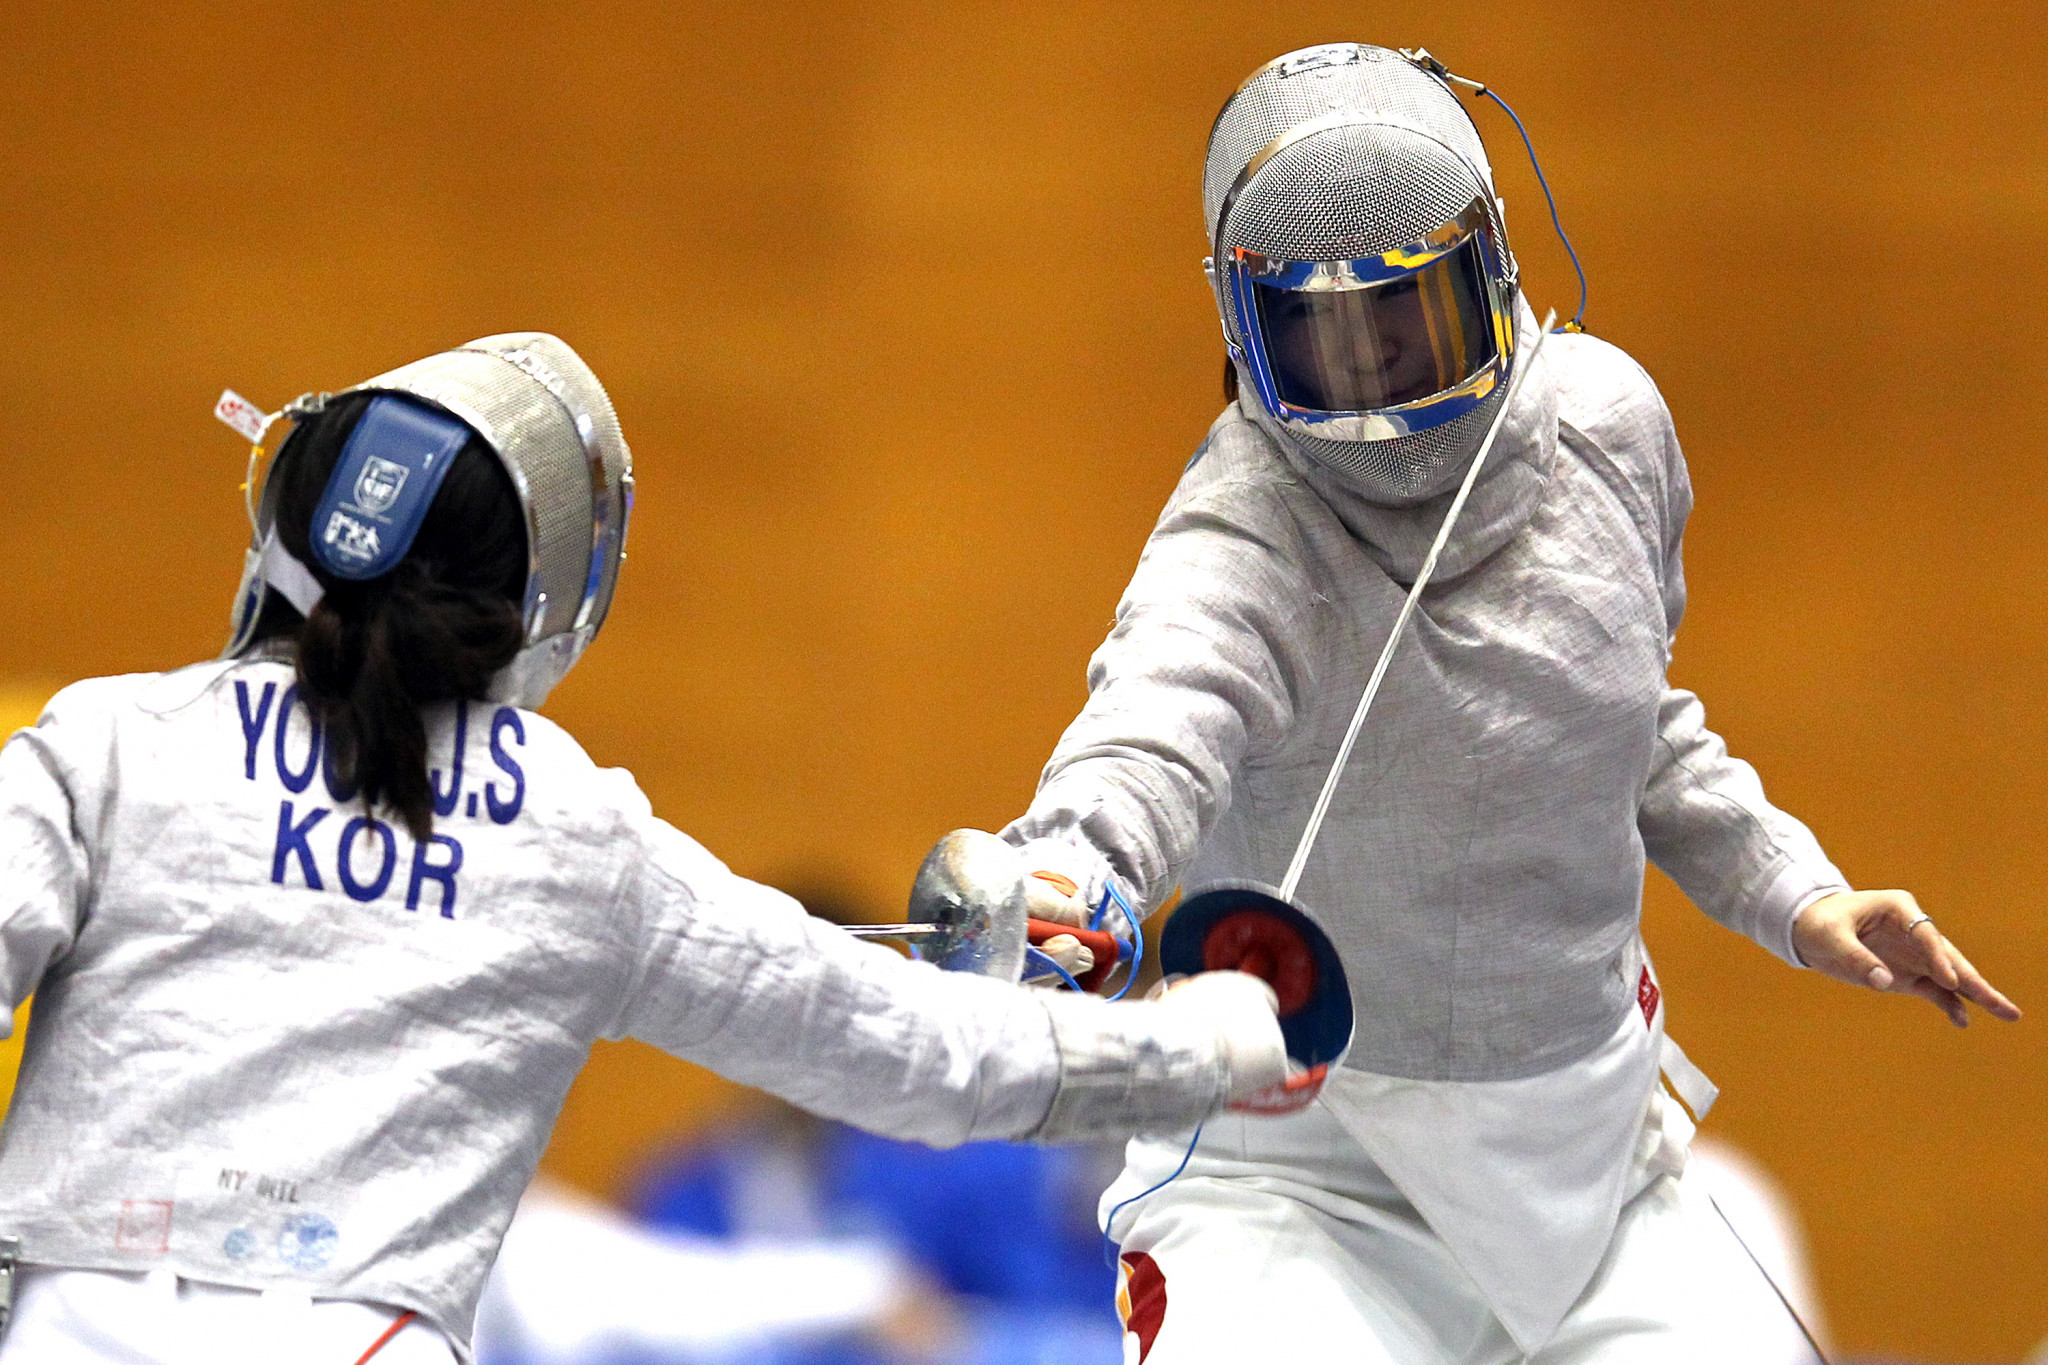 Jisu Yoon of South Korea beat the London 2012 Olympic champion on her way to gold ©Getty Images